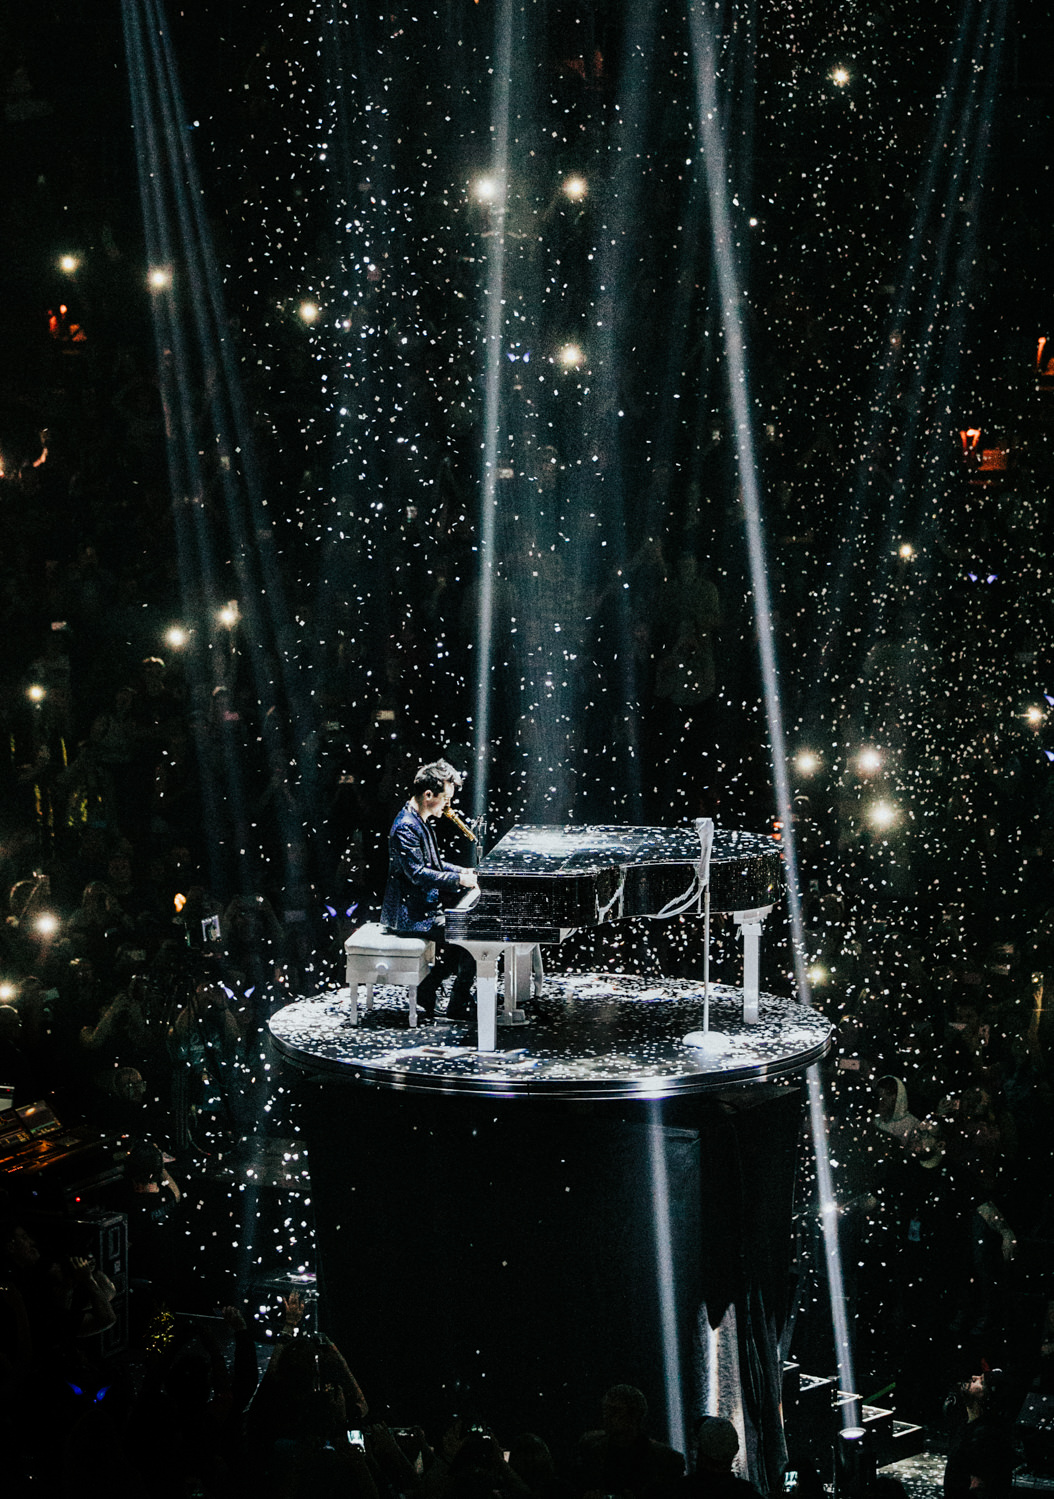 patd-panic-at-the-disco-raised-piano-live-tour-AnnaLeeMedia